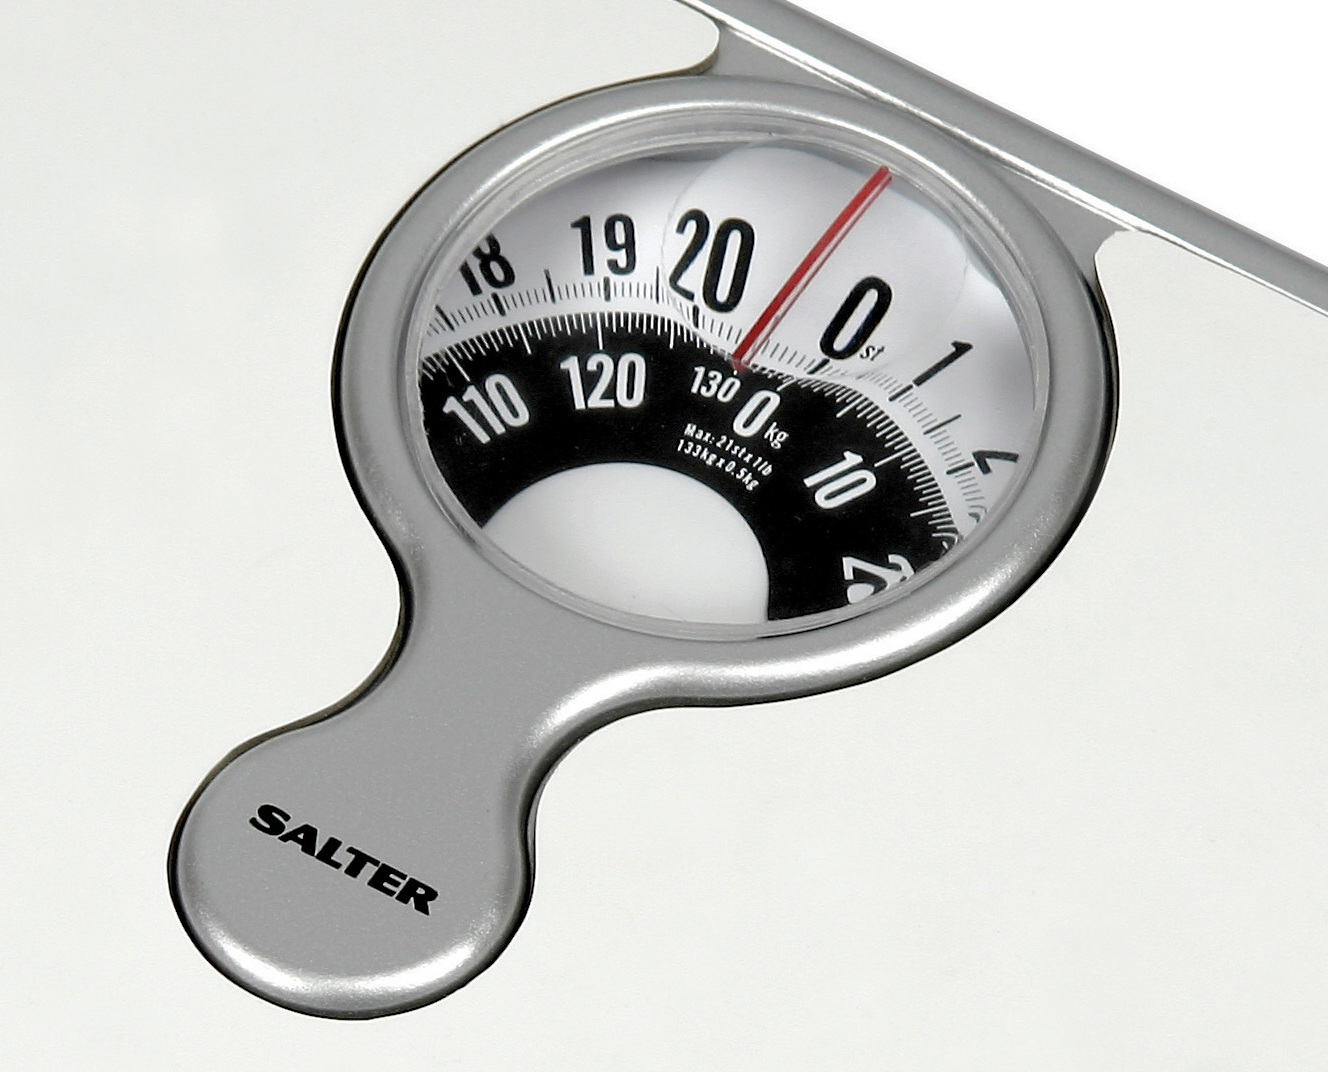 Sentinel Salter Compact Bathroom Scale   Mechanical Weight Scales   White    484 WHDR